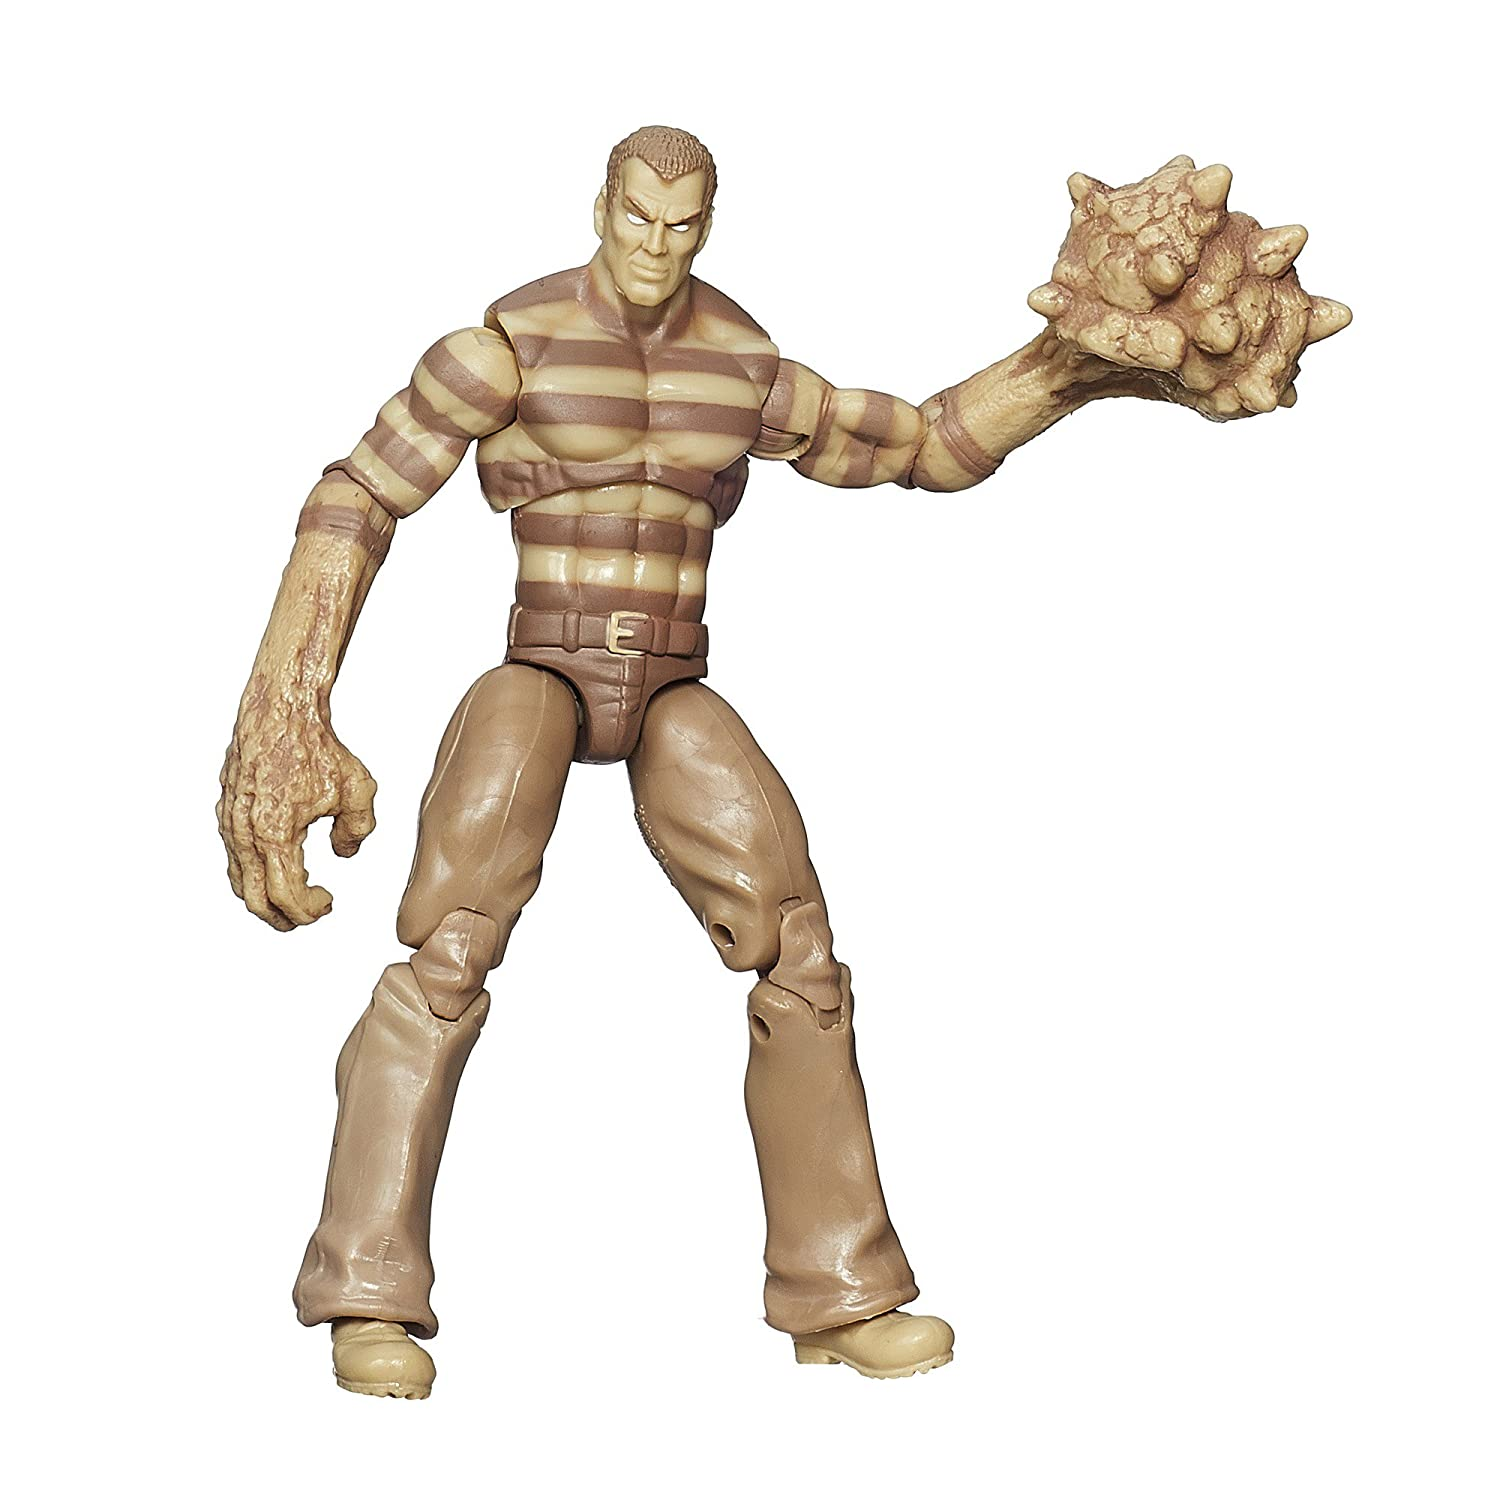 Top page gt gt infinite - Amazon Com Marvel Infinite Series Marvel S Sandman Action Figure Sand Variant 3 75 Inches Toys Games